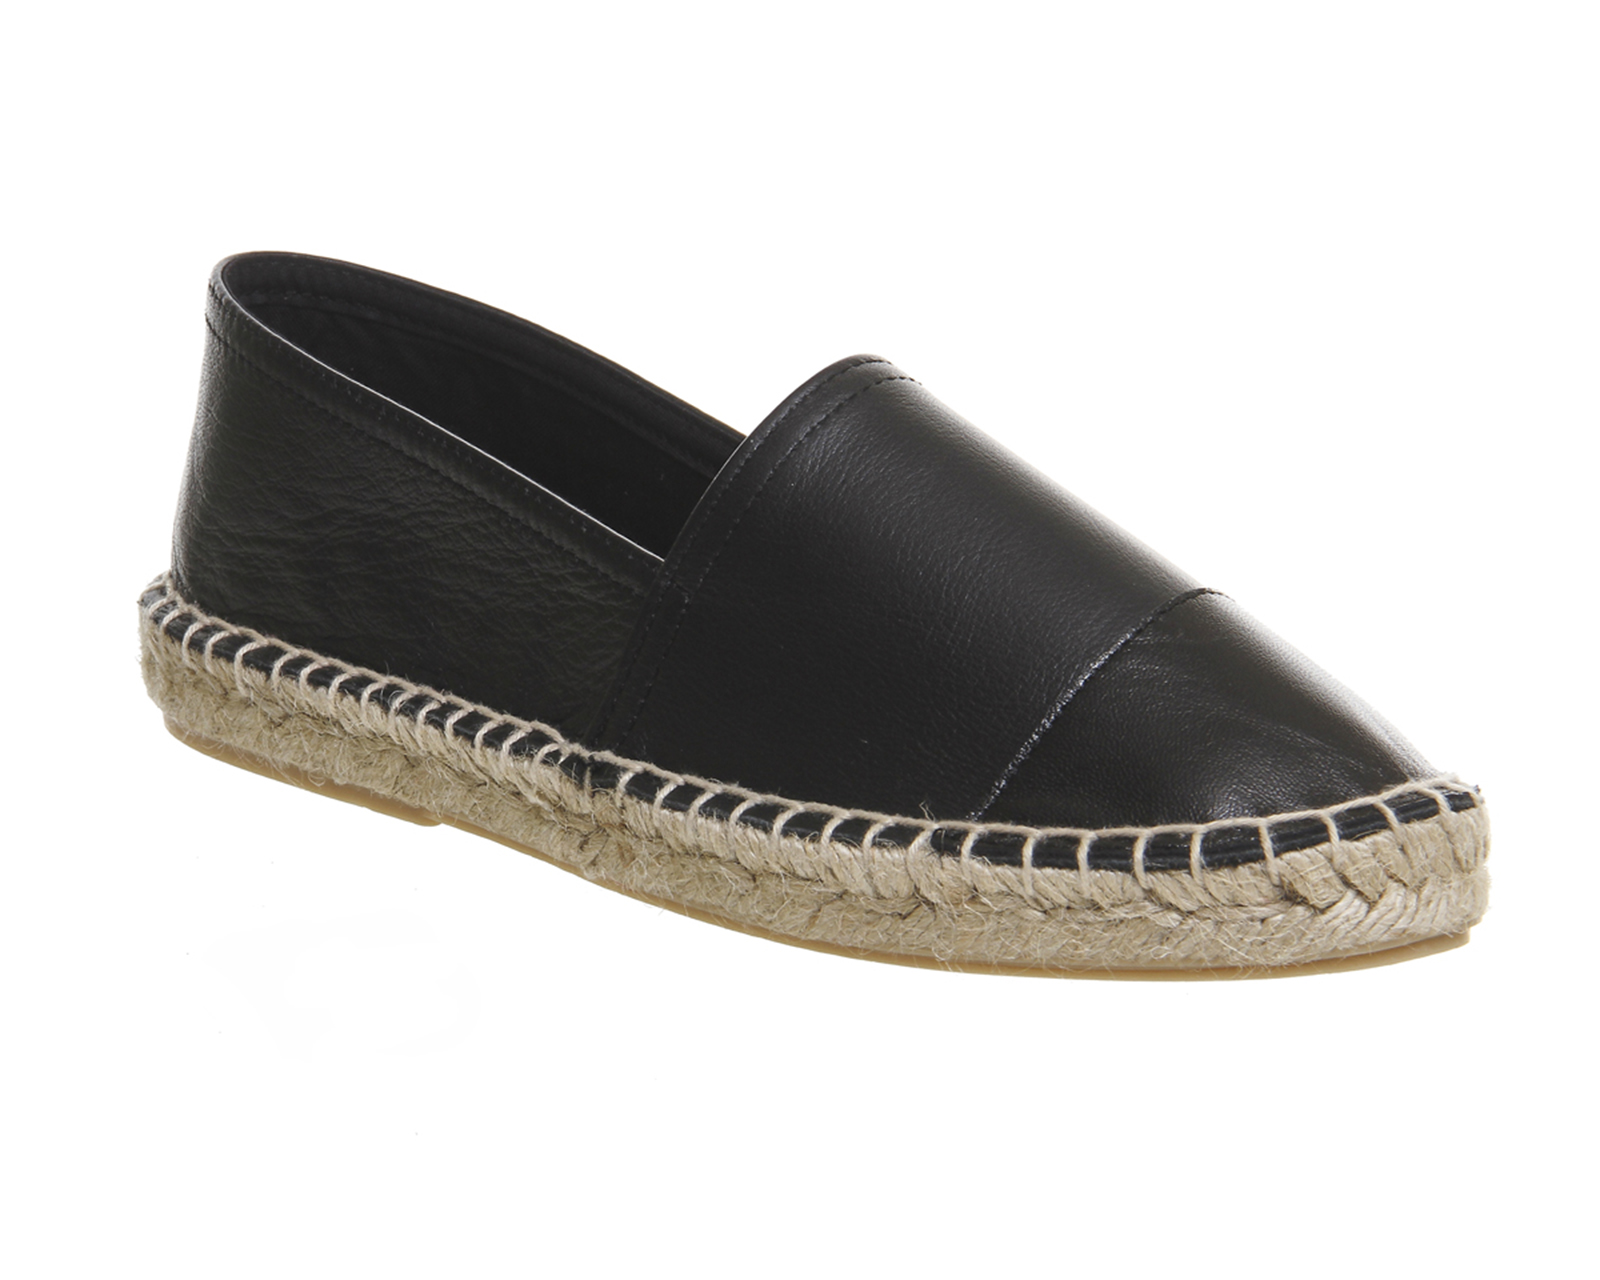 monogram leather espadrilles featuring embossed and interlaced ysl initials, a tab in back and a mid-sole and interior in jute braid.